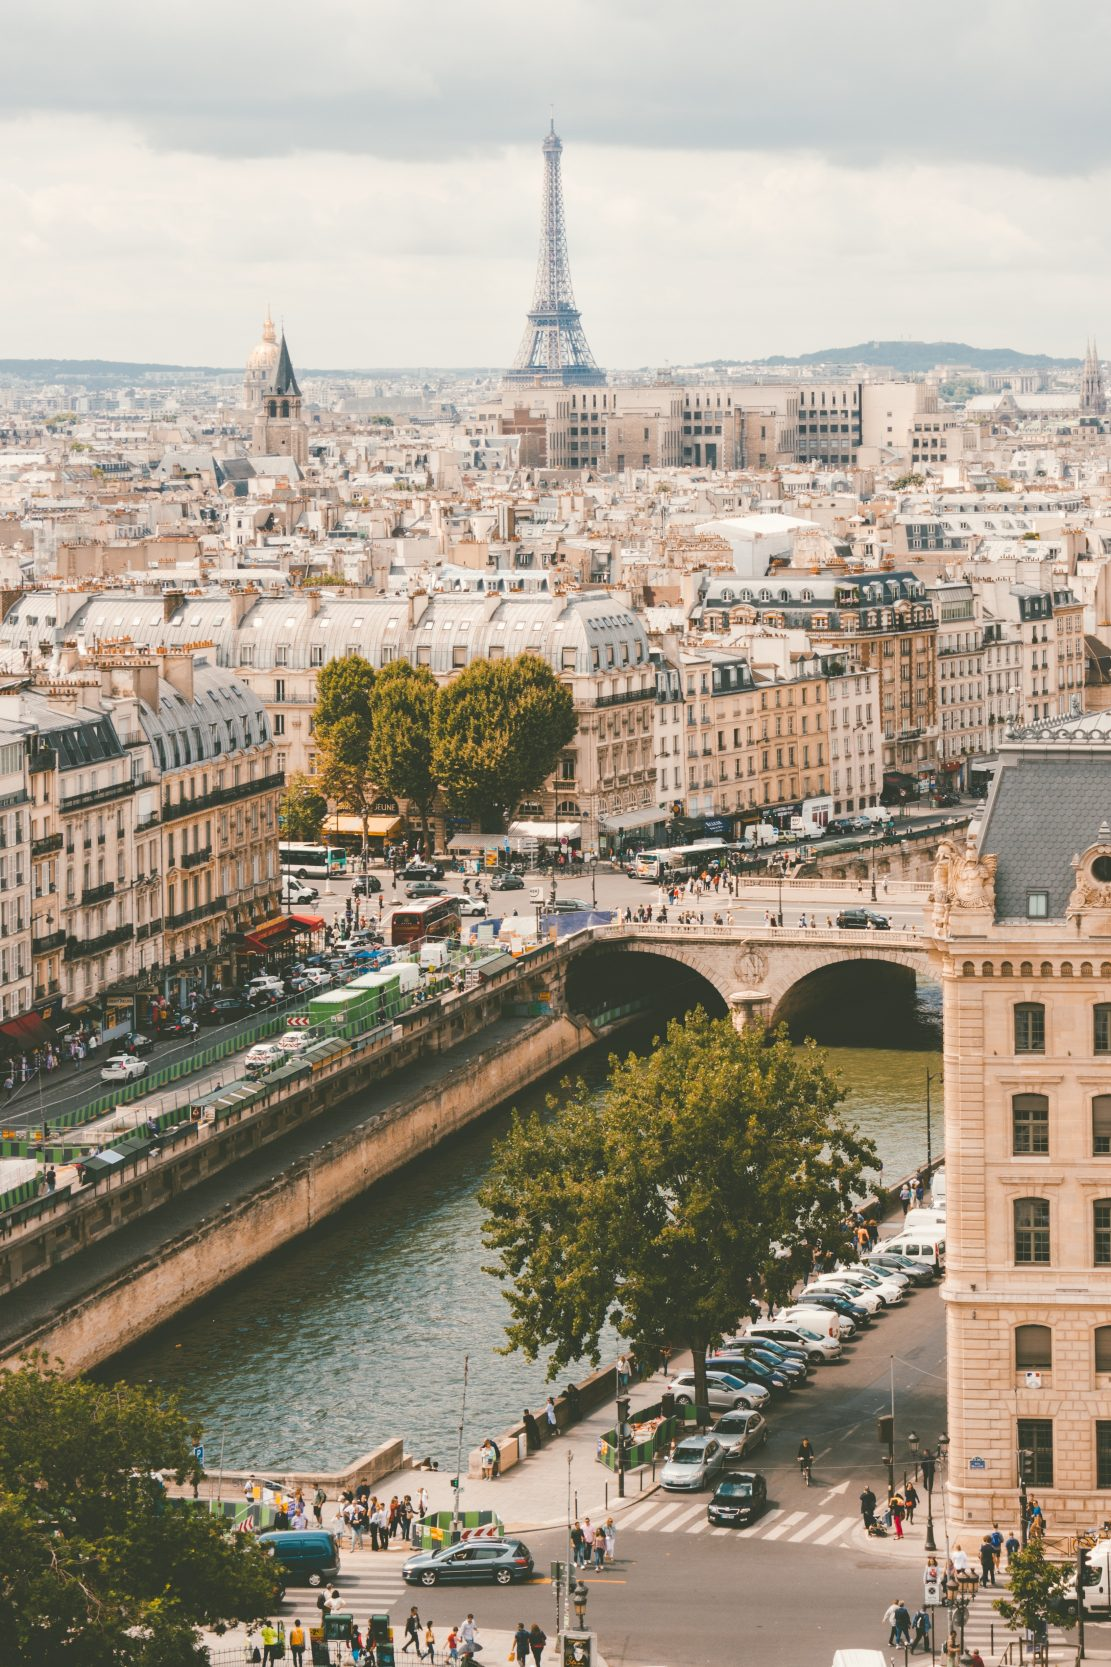 Day trips to Paris from London